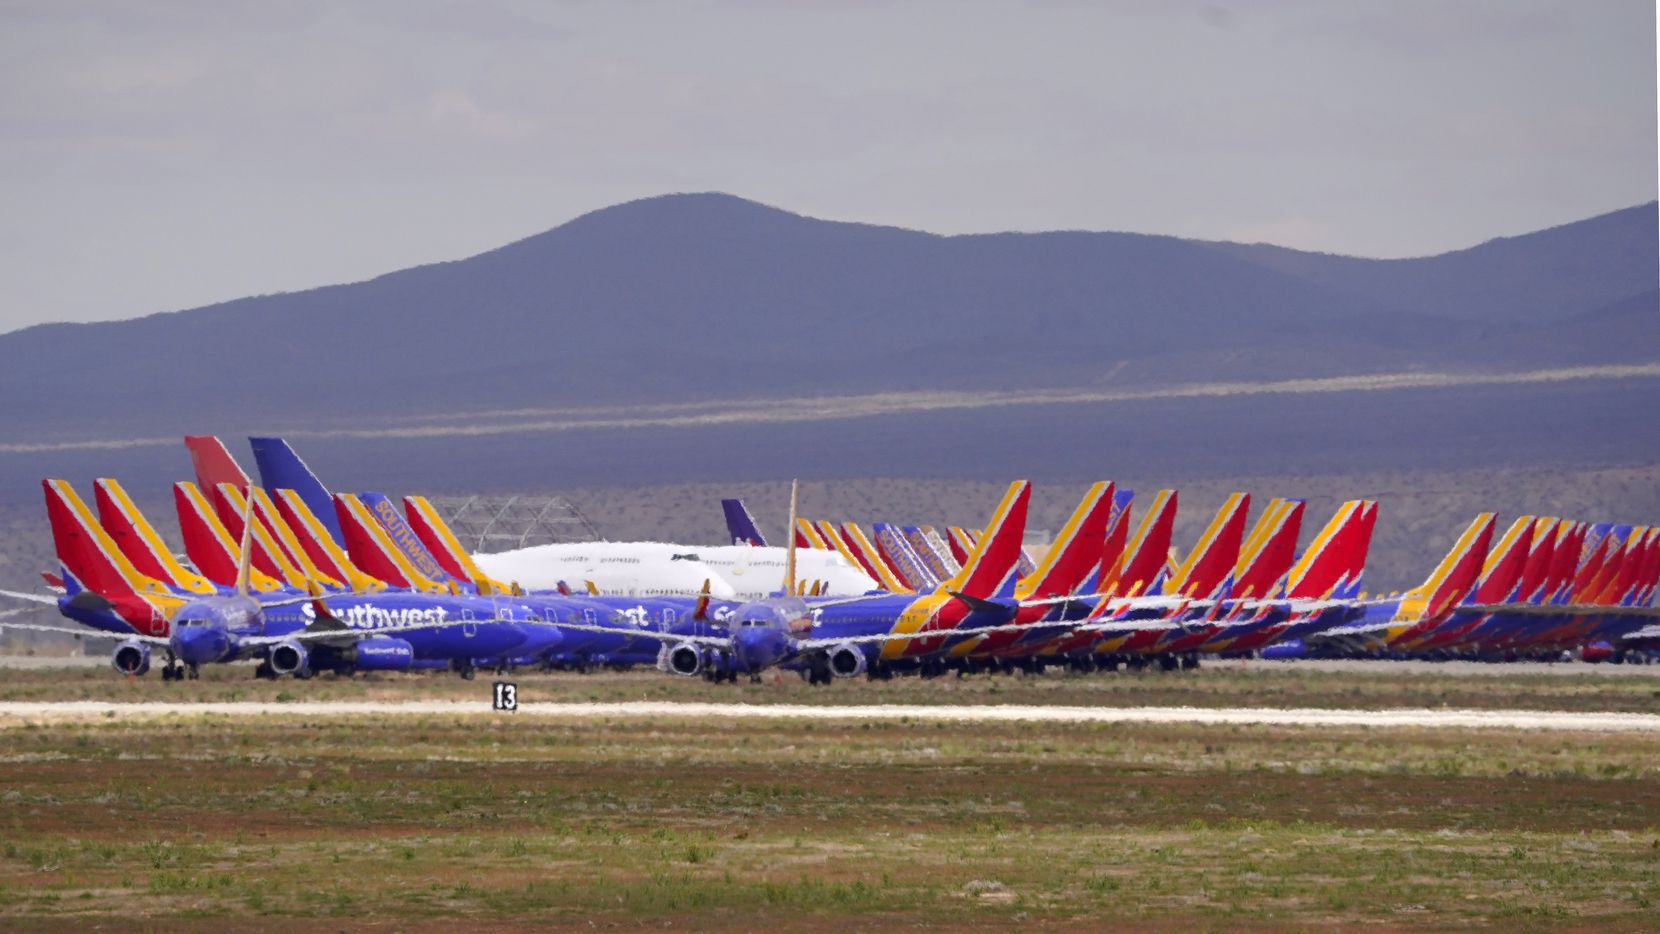 Southwest Airlines aircraft are seen stored at Southern California Logistics Airport, Wednesday, March 25, 2020, in Victorville, Calif.